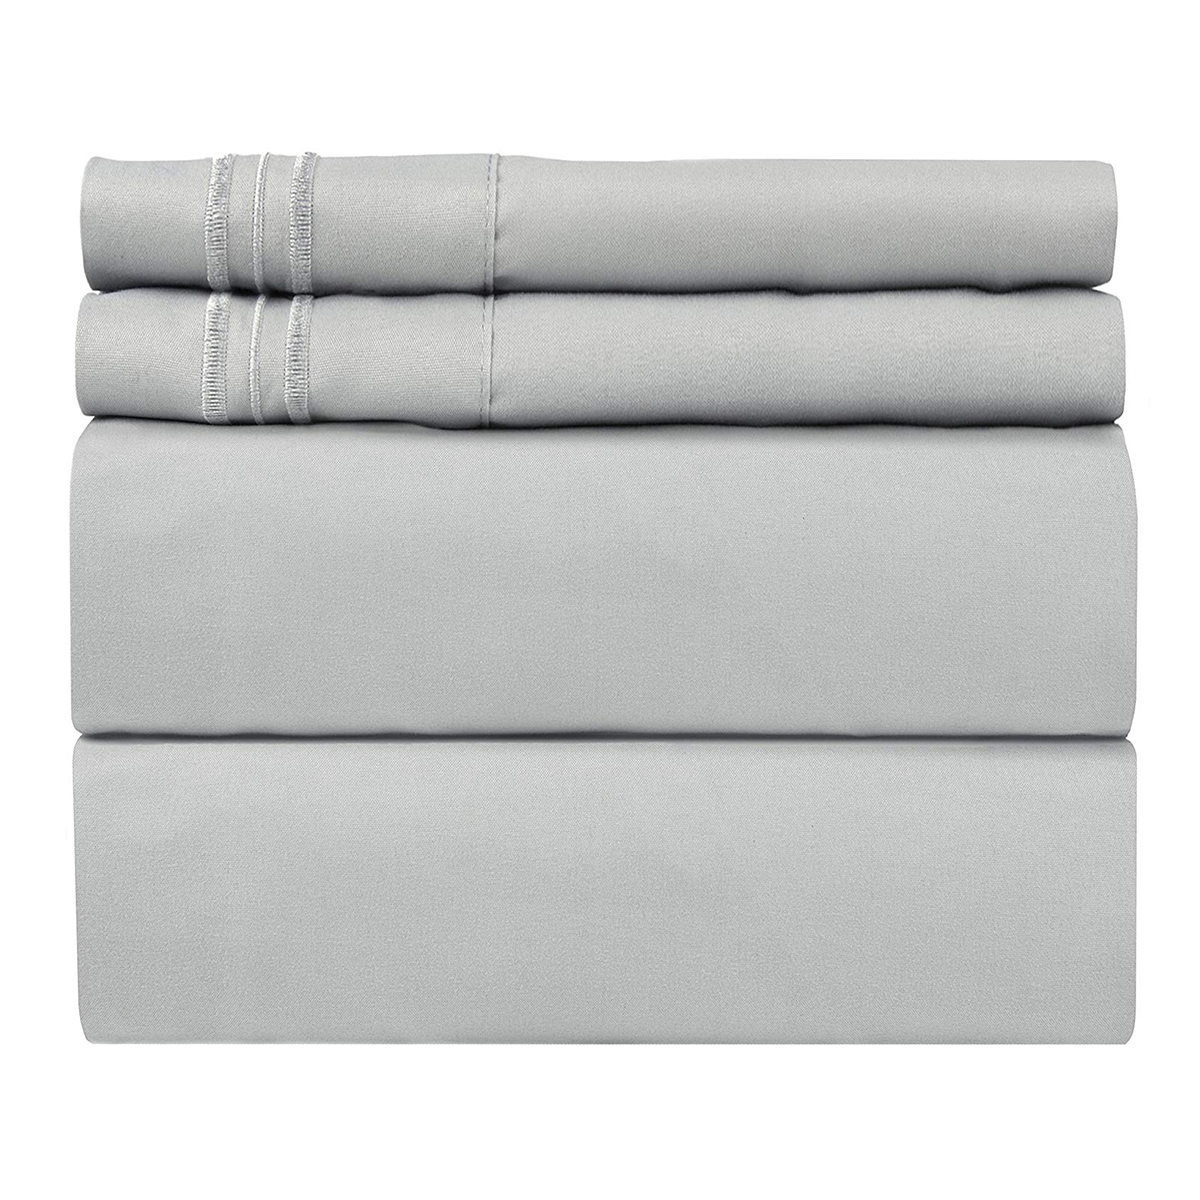 CGK Unlimited Bed Sheets